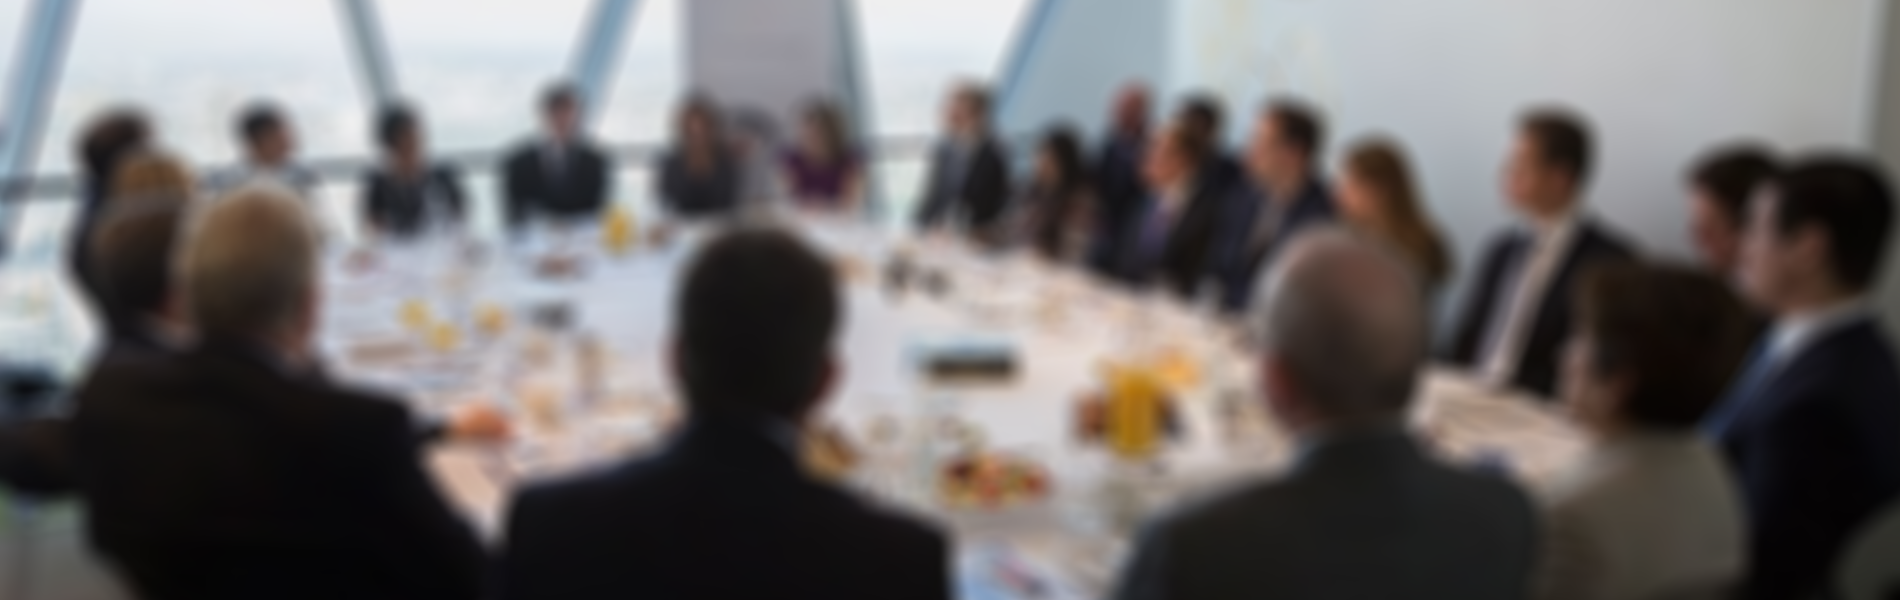 Simpson Associates & IBM Legal Roundtable